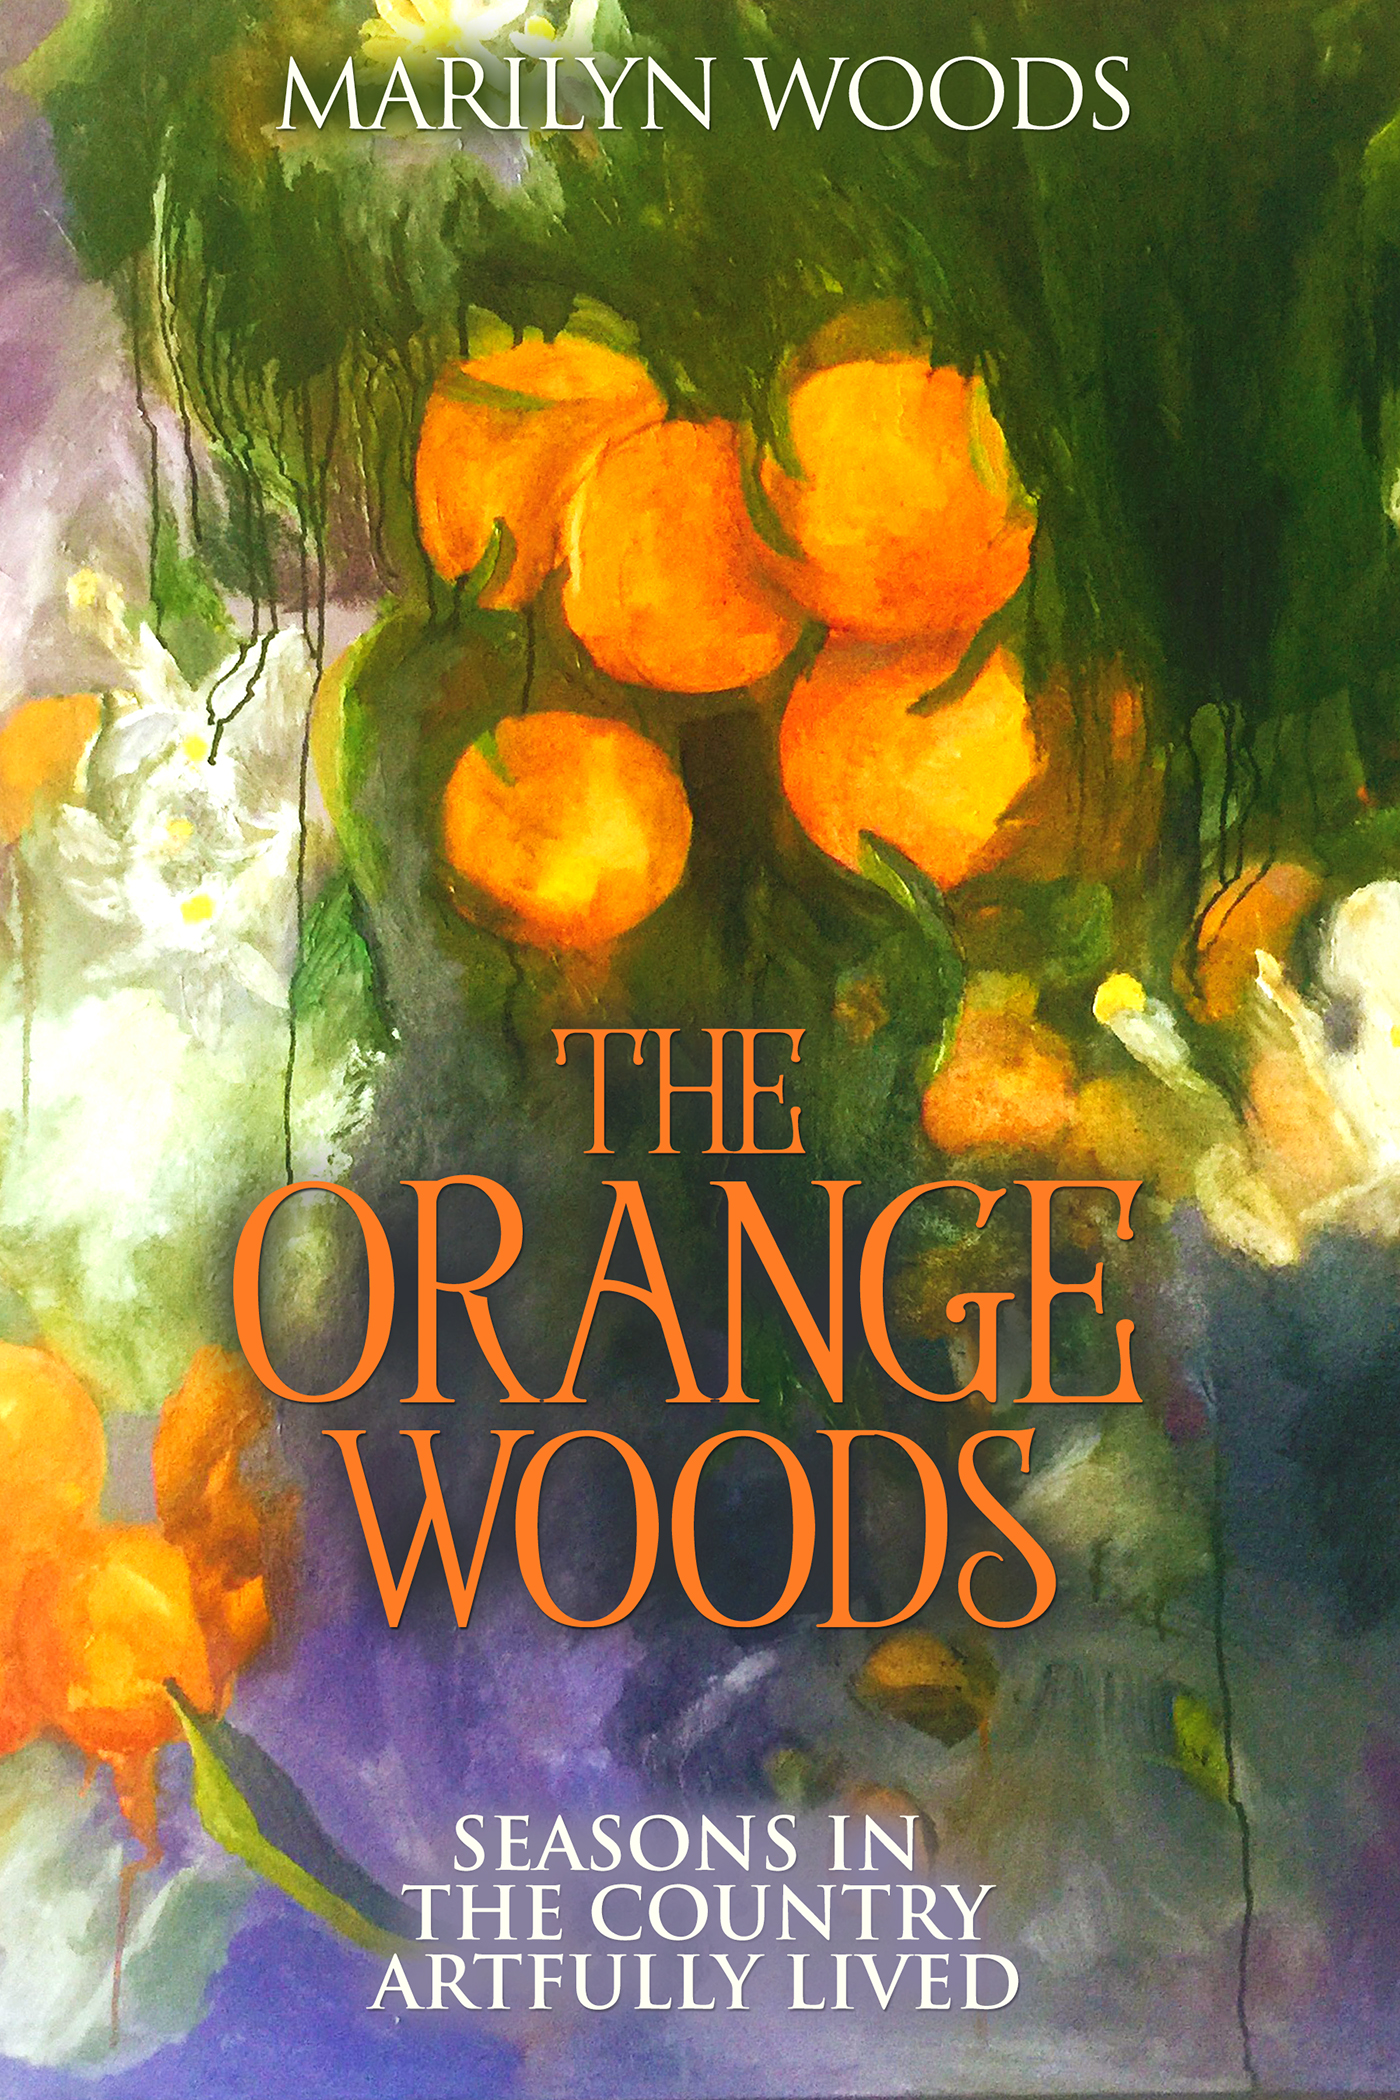 The Orange Woods: Seasons in the Country Arfully Lived